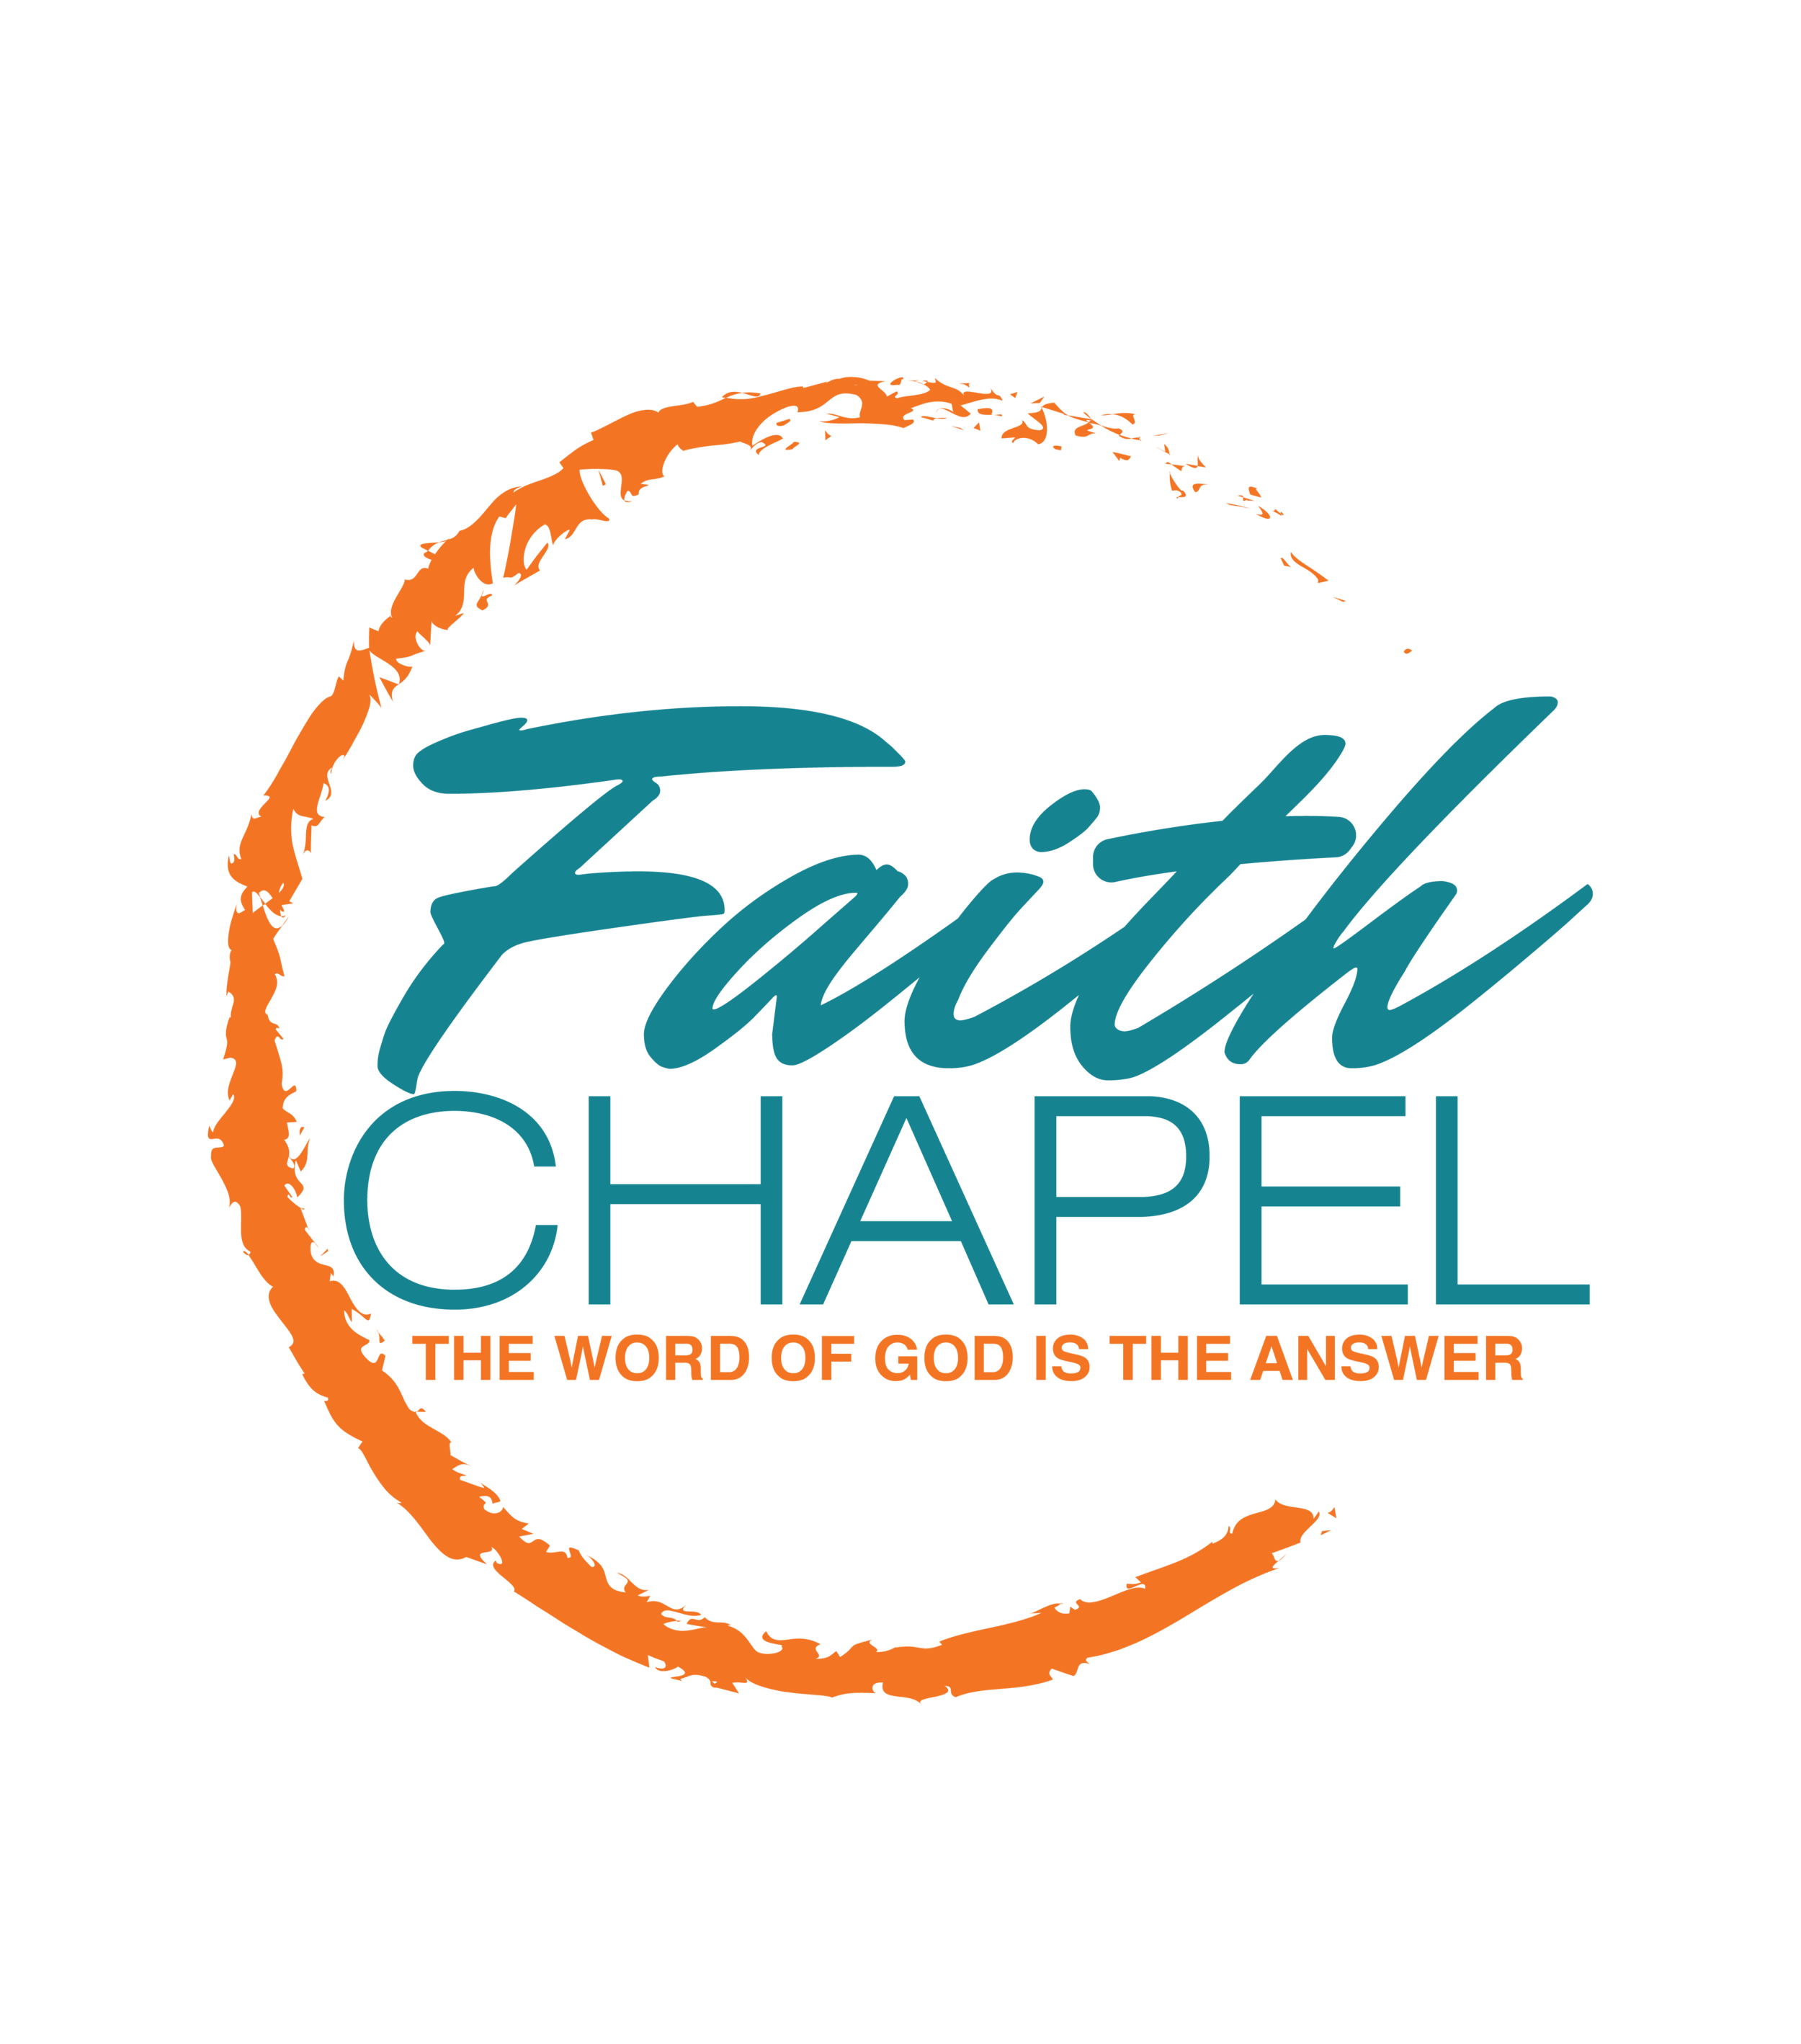 UPDATED_FAITH CHAPEL FINAL LOGO-04.png